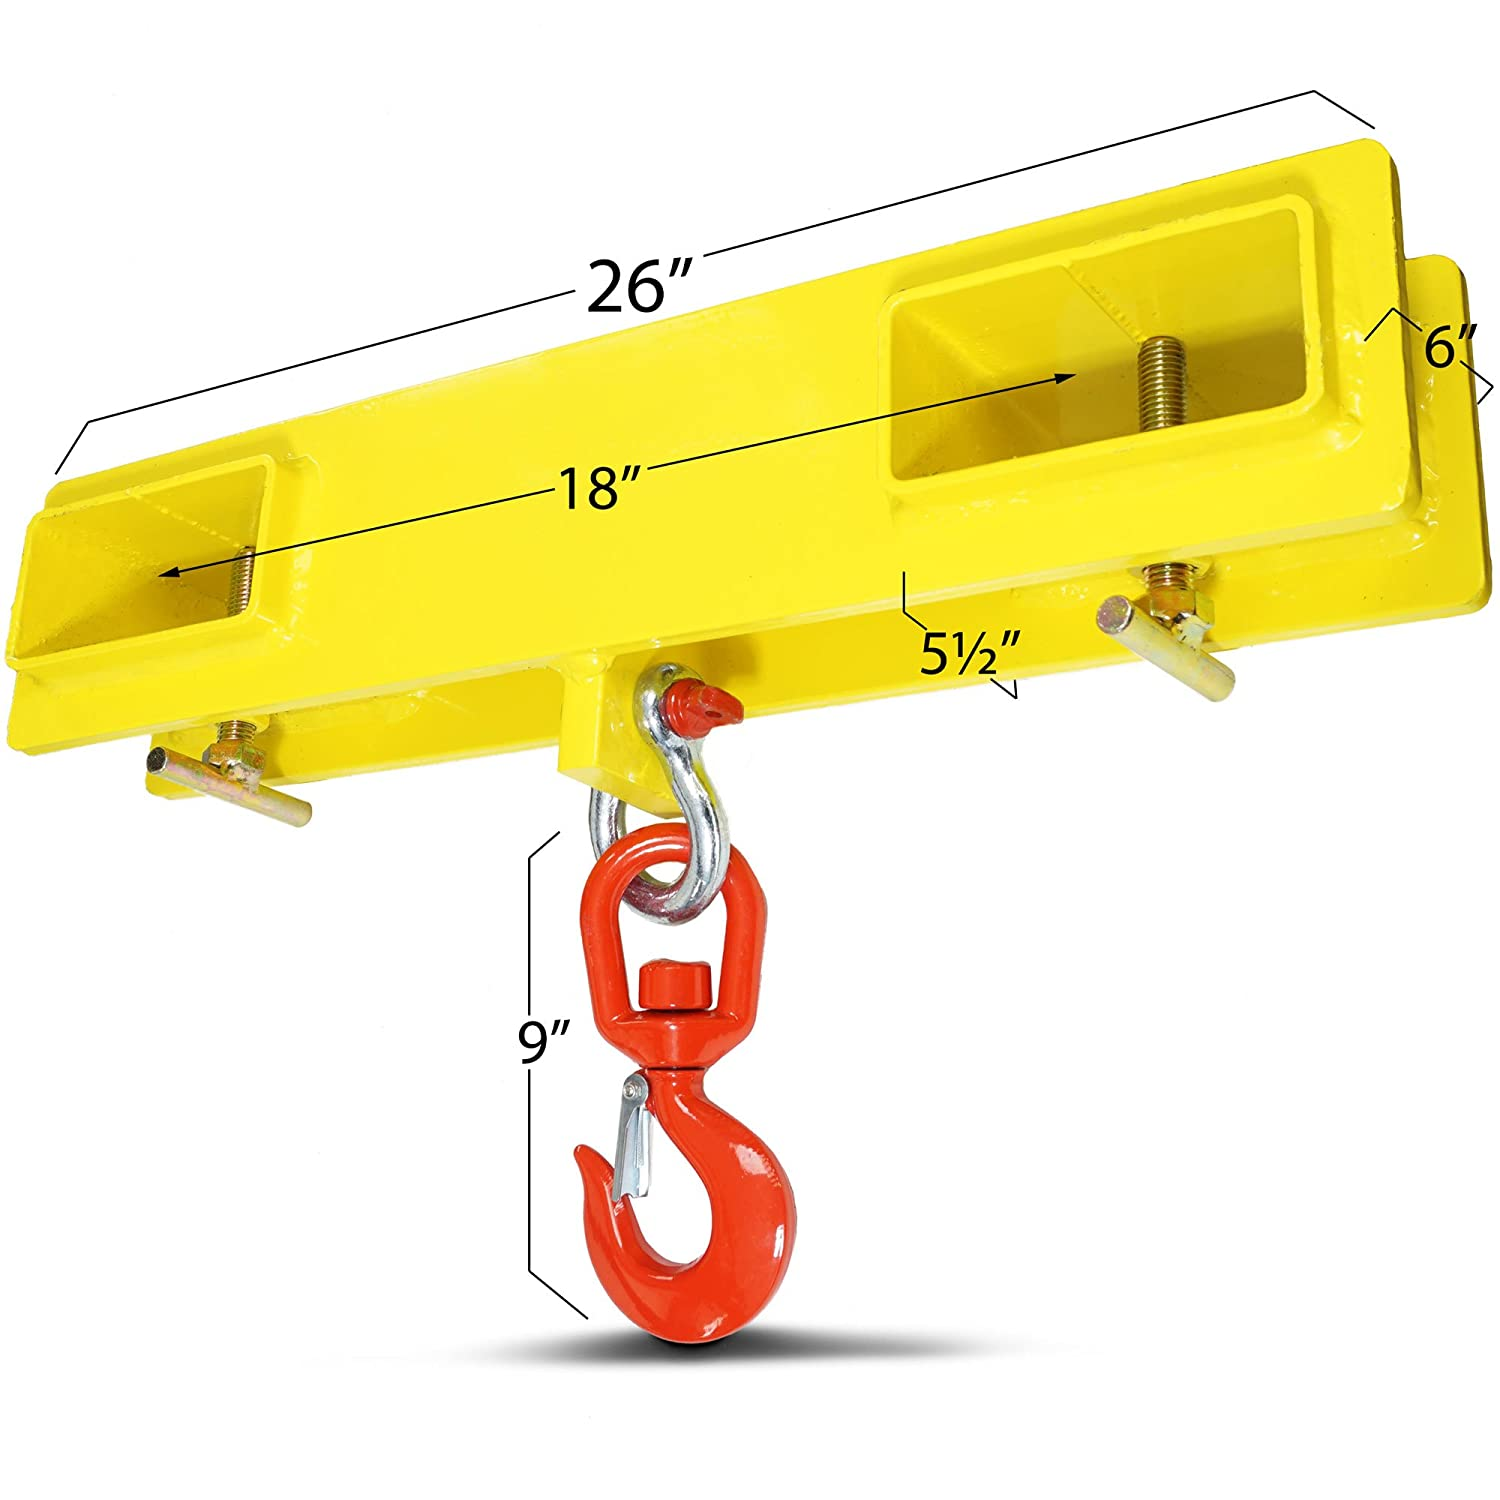 Titan Forklift Lifting Hoist Swivel Hook Mobile Crane 4000 lb  Capacity Lift